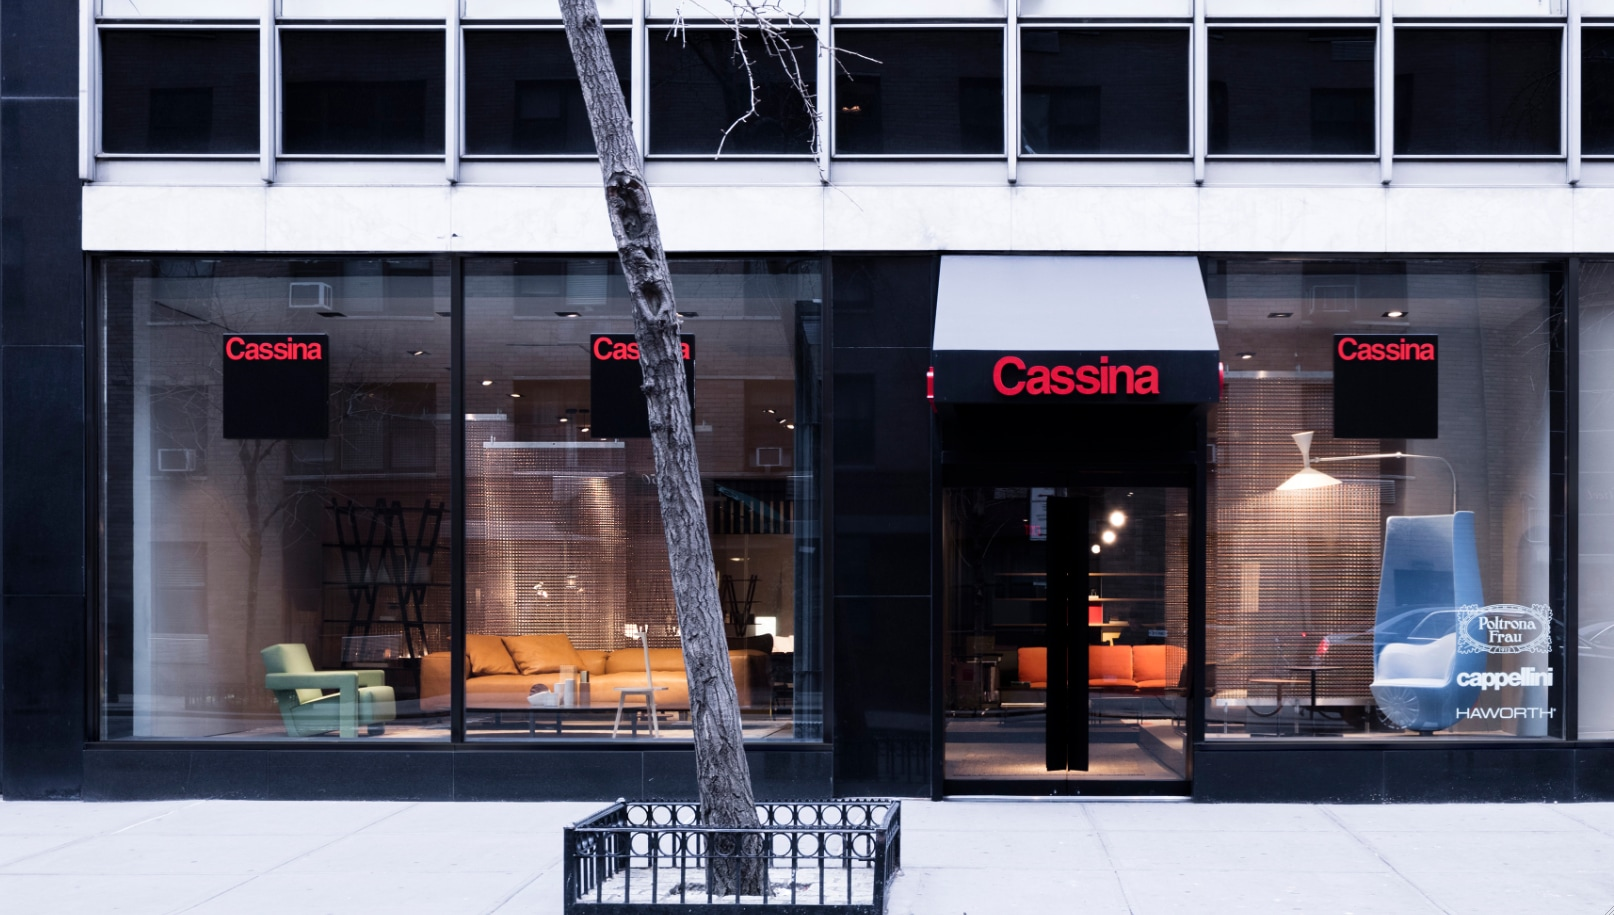 Cassina restyling a Midtown New York